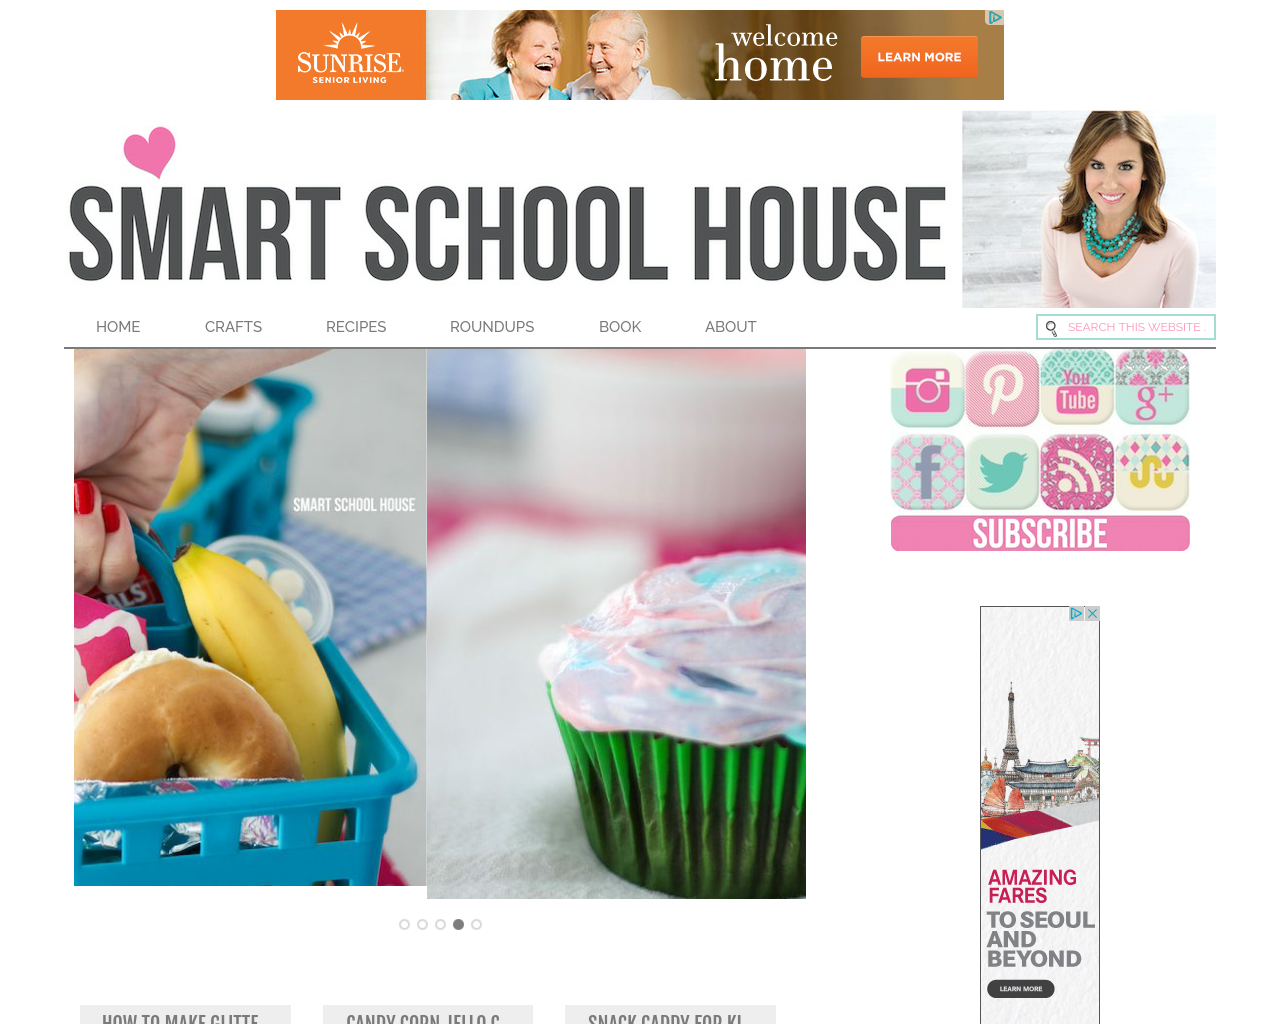 Smart-School-House-Advertising-Reviews-Pricing